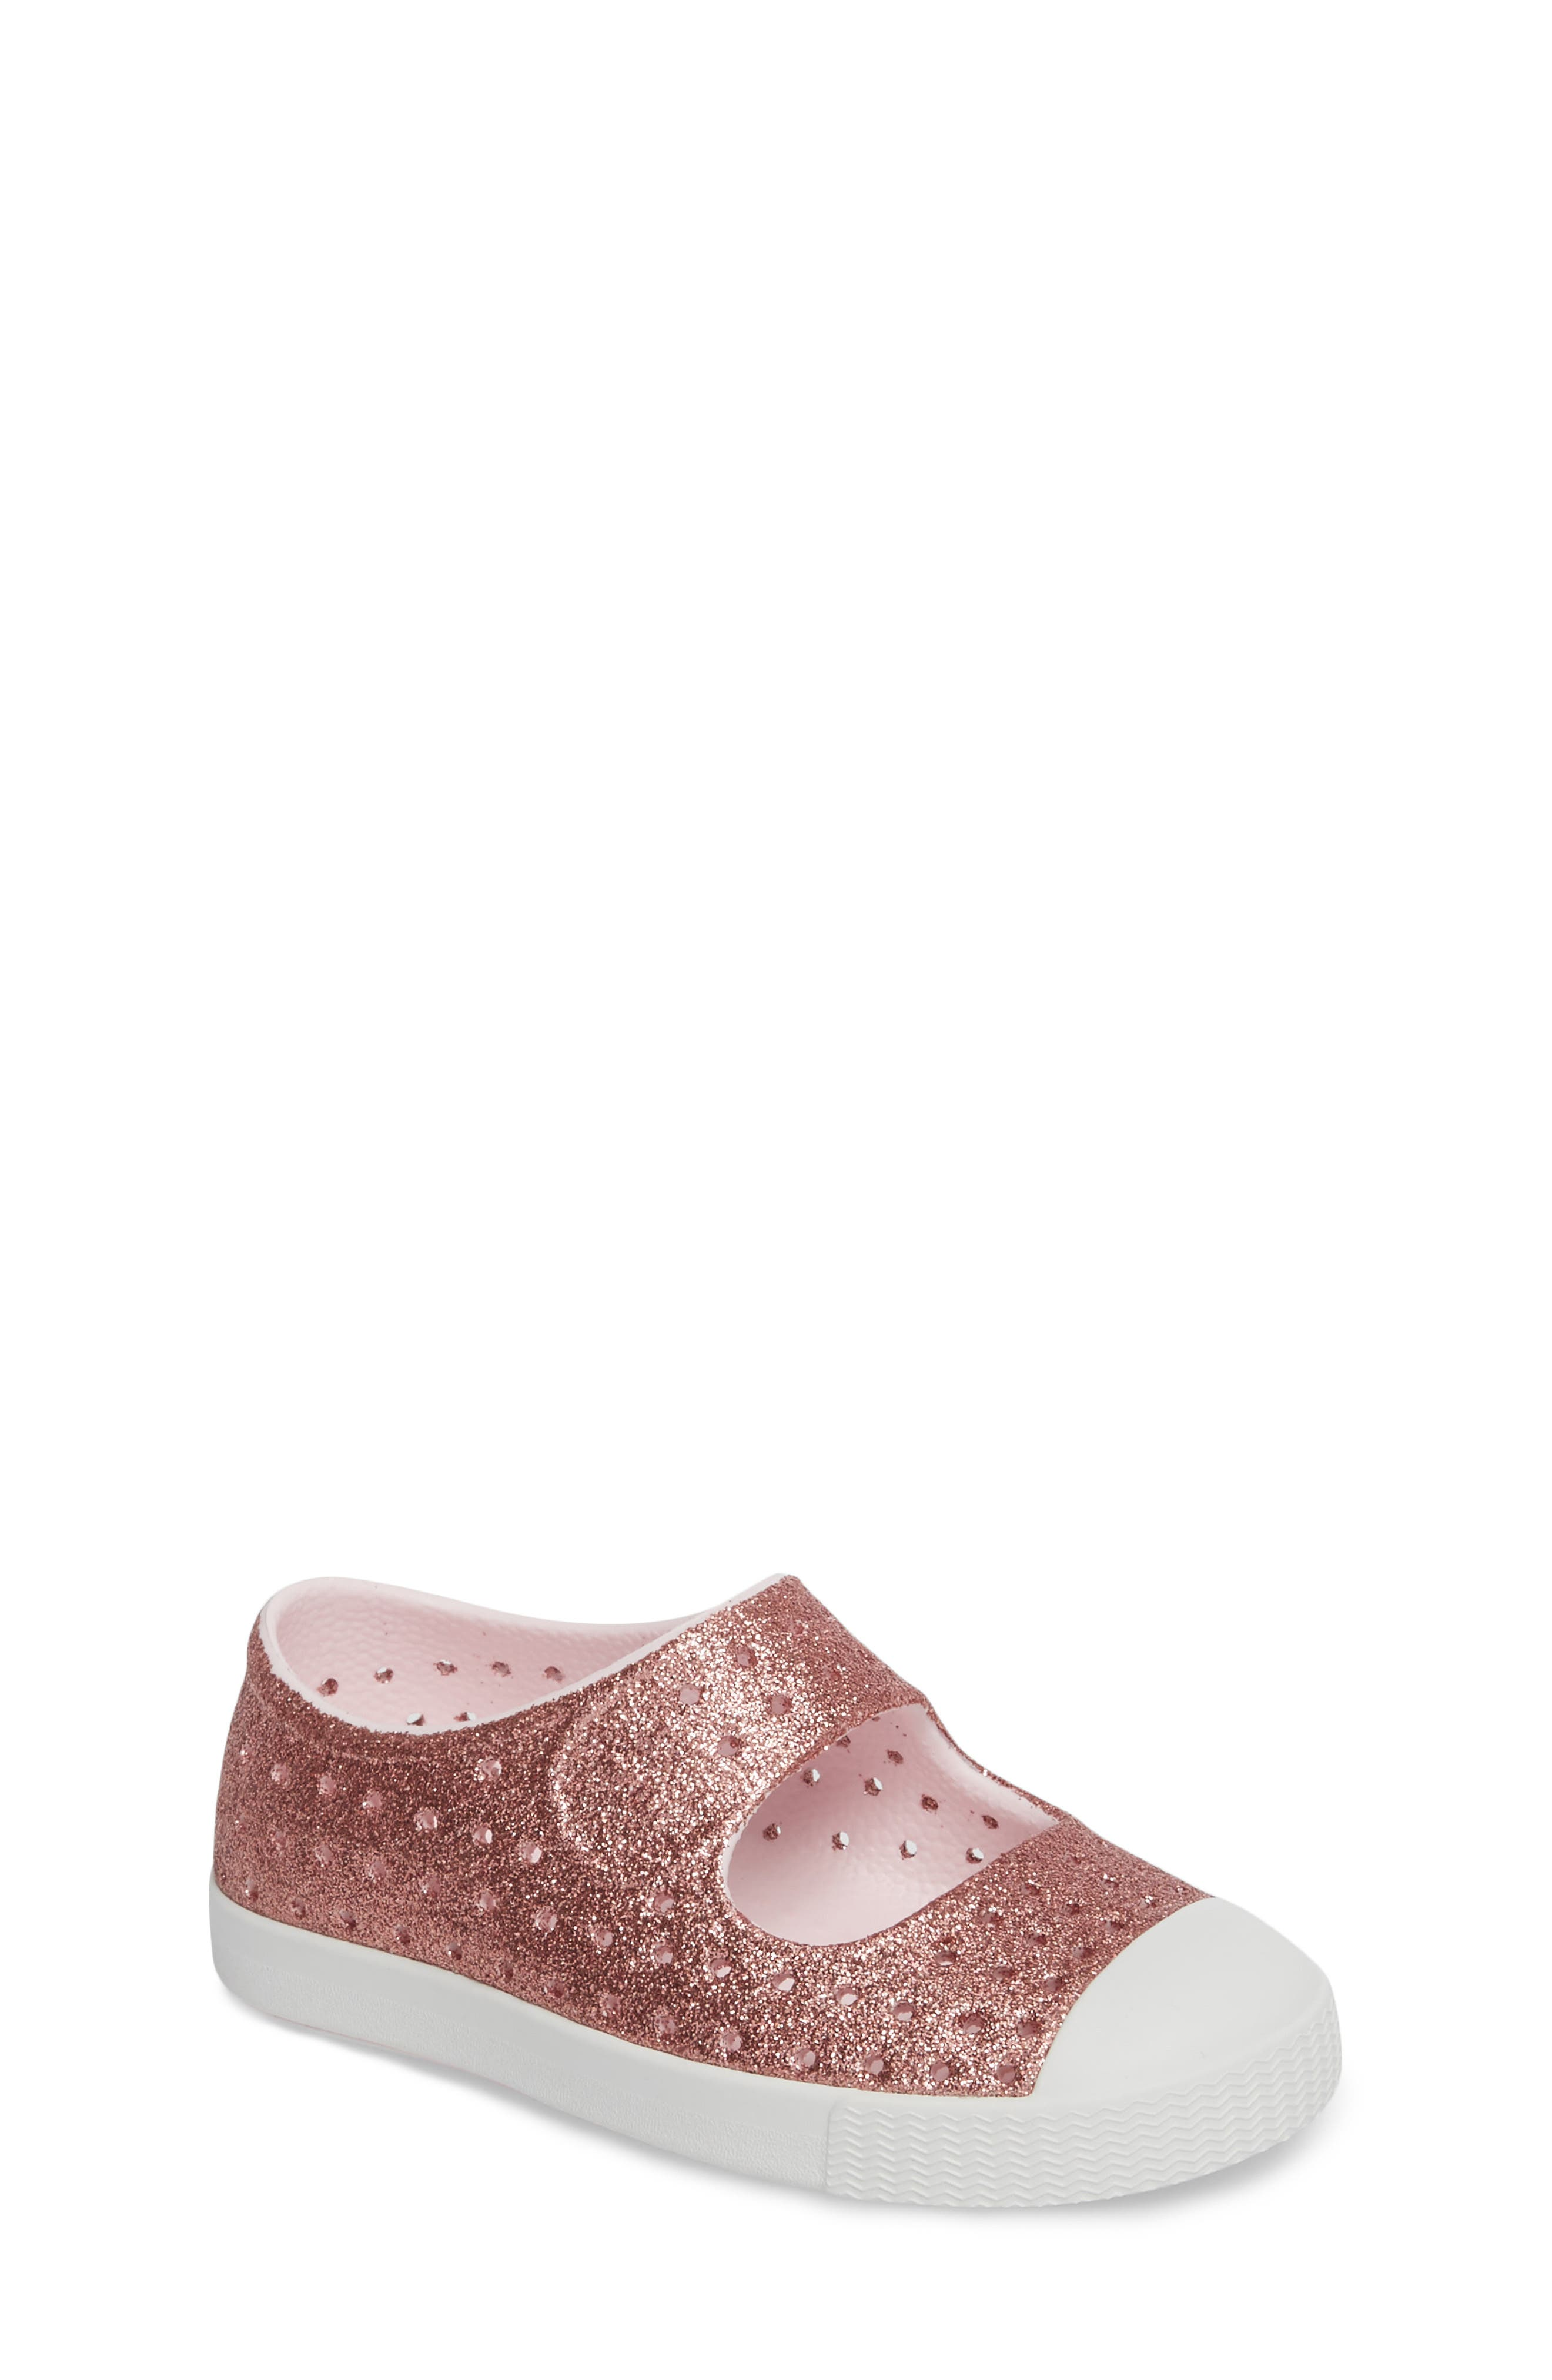 Alternate Image 1 Selected - Native Shoes Juniper Bling Glitter Perforated Mary Jane (Baby, Walker, Toddler & Little Kid)